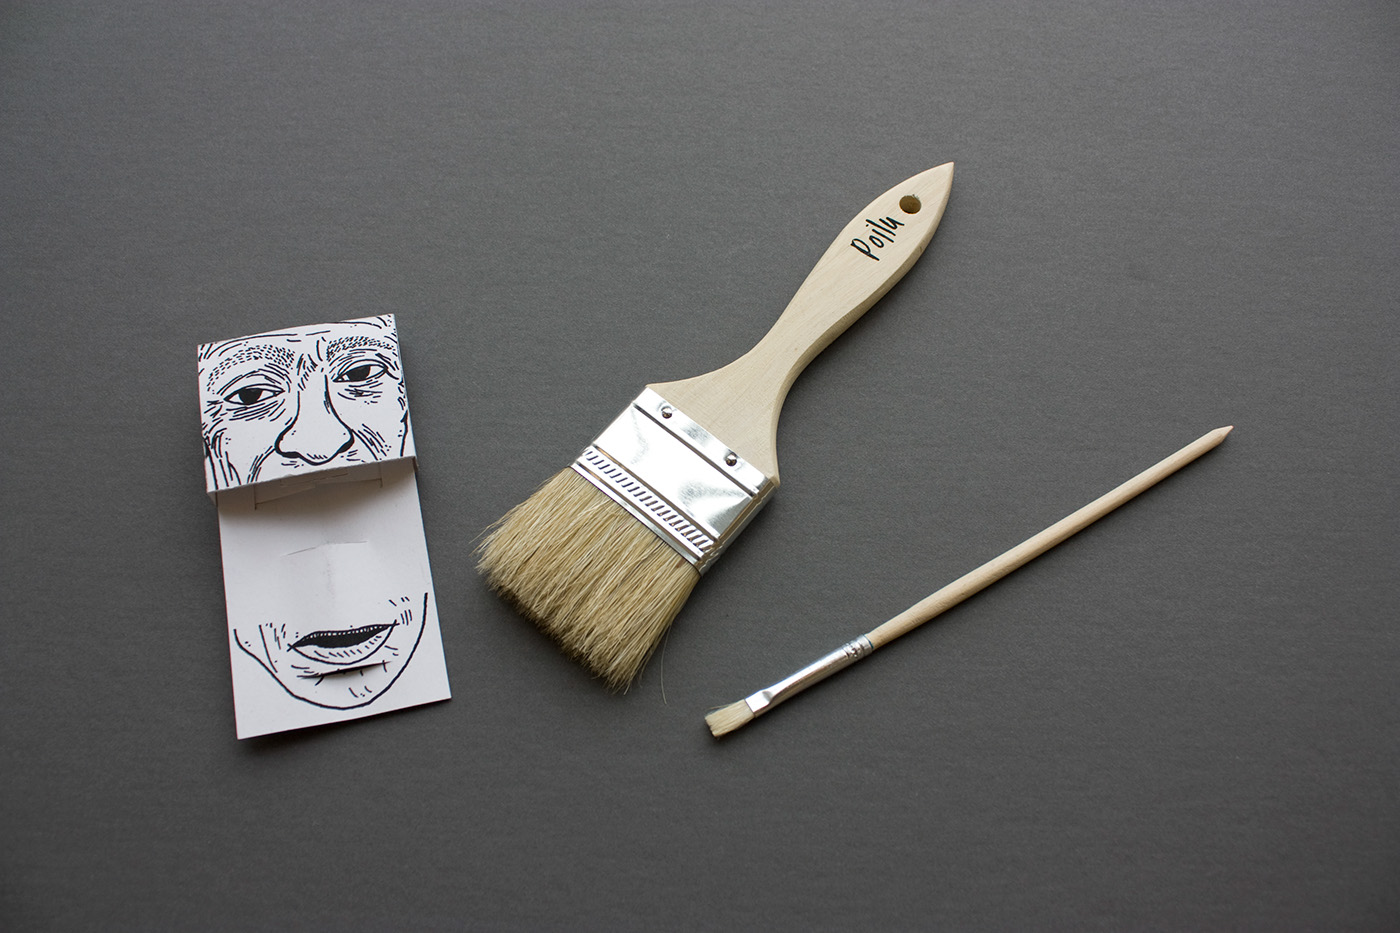 pinceaux brush mustache paint draw package wood Old men illustrations series tool hair